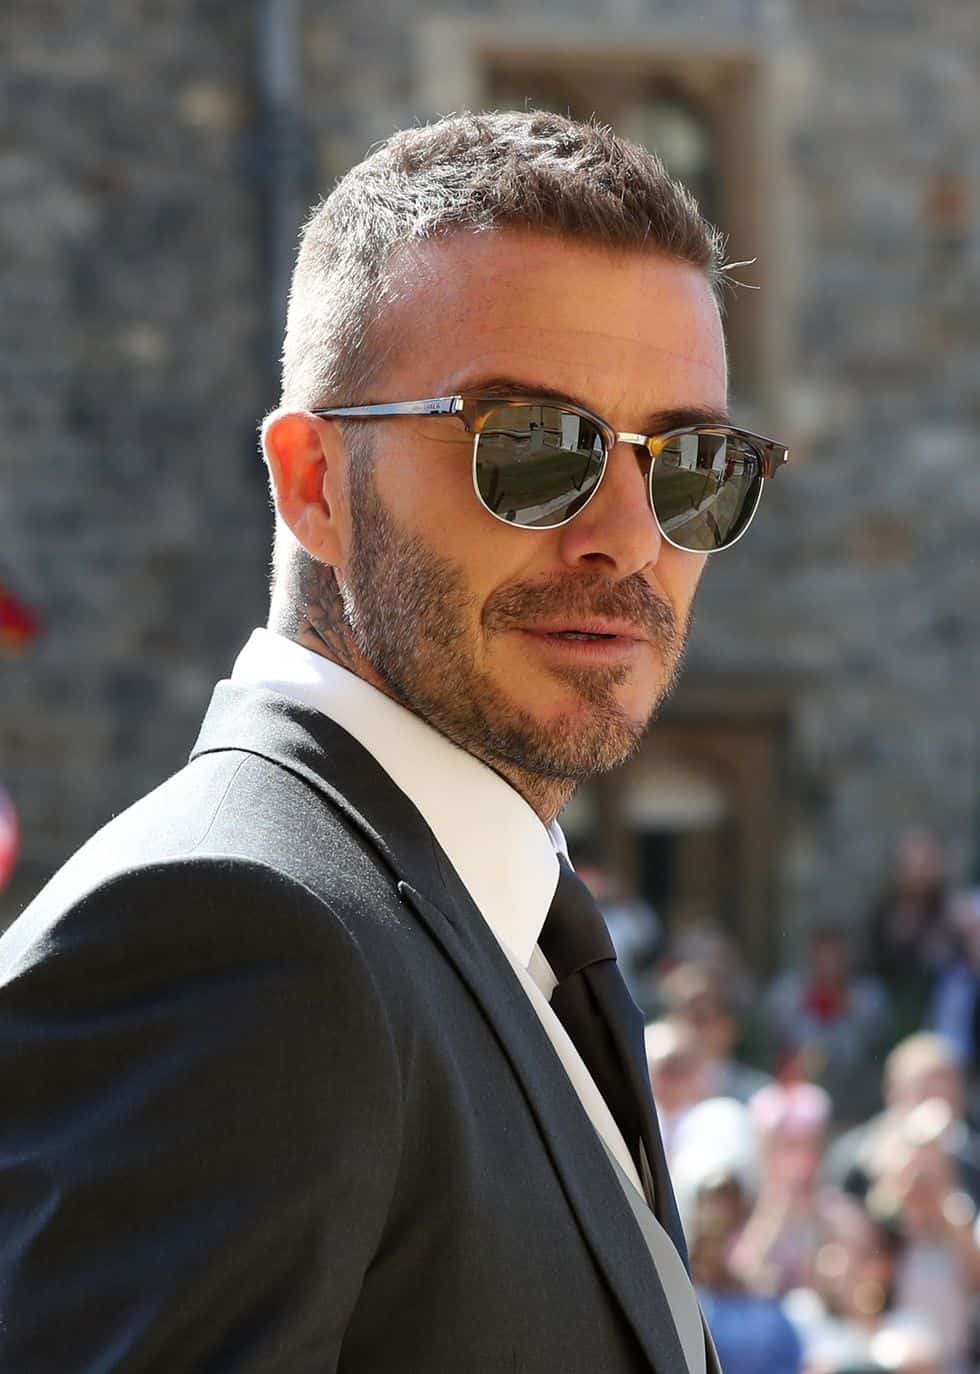 David Beckham Walked into The Royal Wedding with a Classic ...